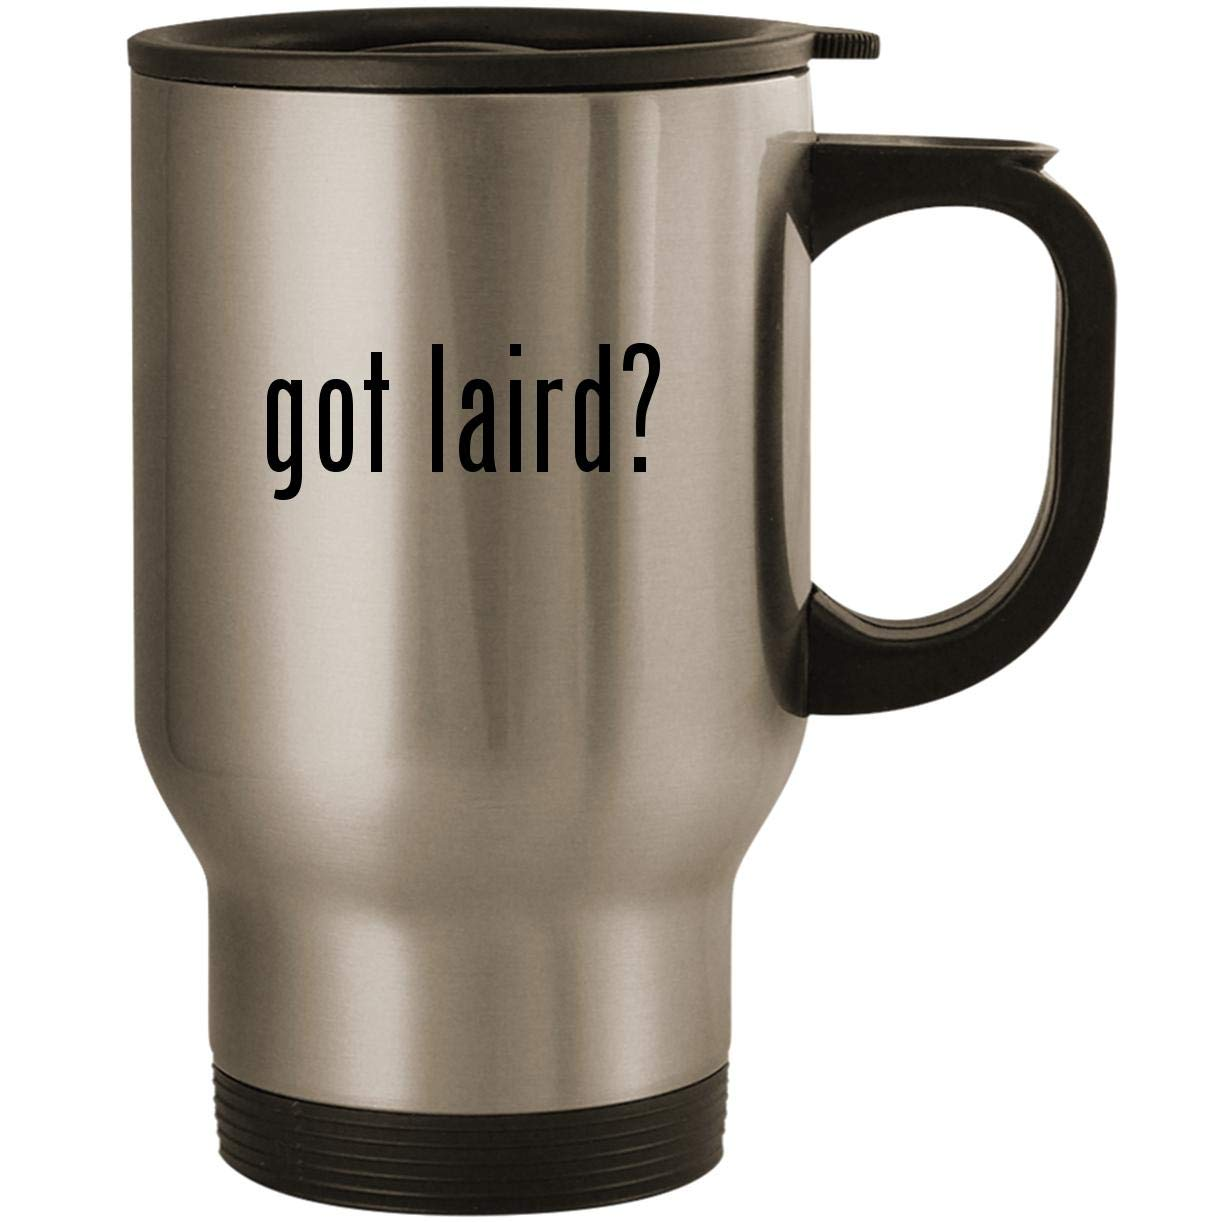 got laird? - Stainless Steel 14oz Road Ready Travel Mug, Silver